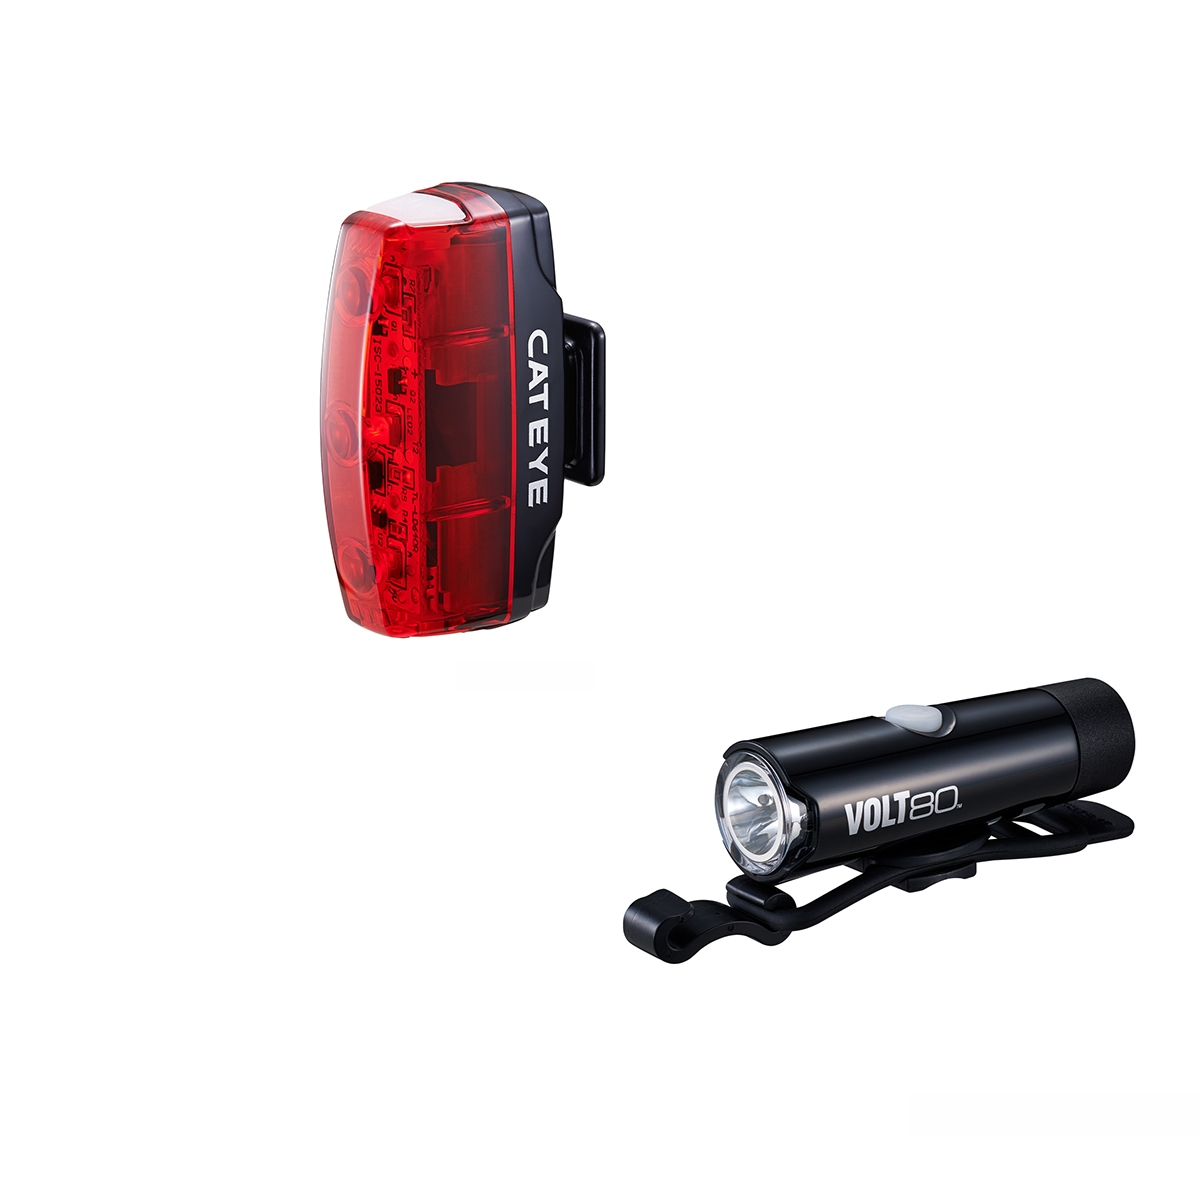 Cateye VOLT 80 XC Front and Rapid Micro Rear LED Lightset